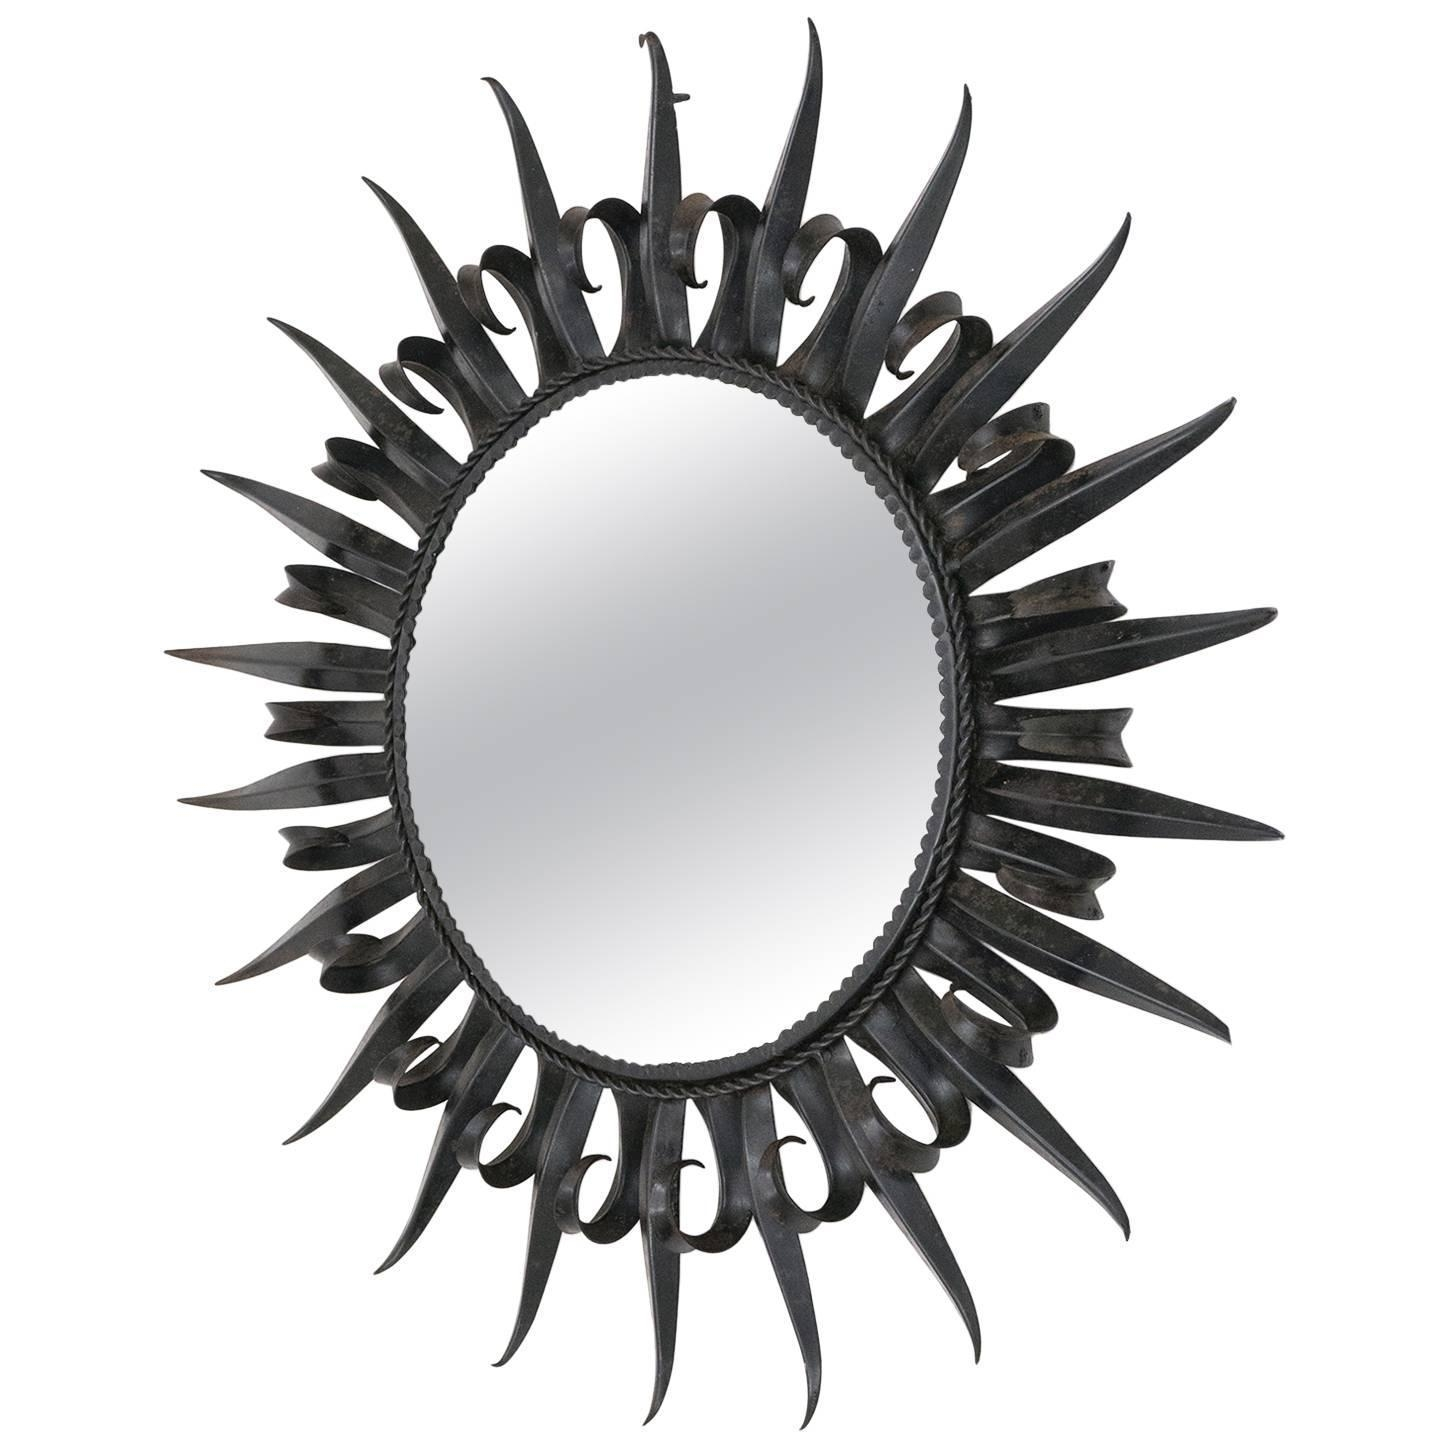 Wrought Iron Mirrors – 91 For Sale At 1Stdibs Within Black Wrought Iron Mirrors (Image 20 of 20)